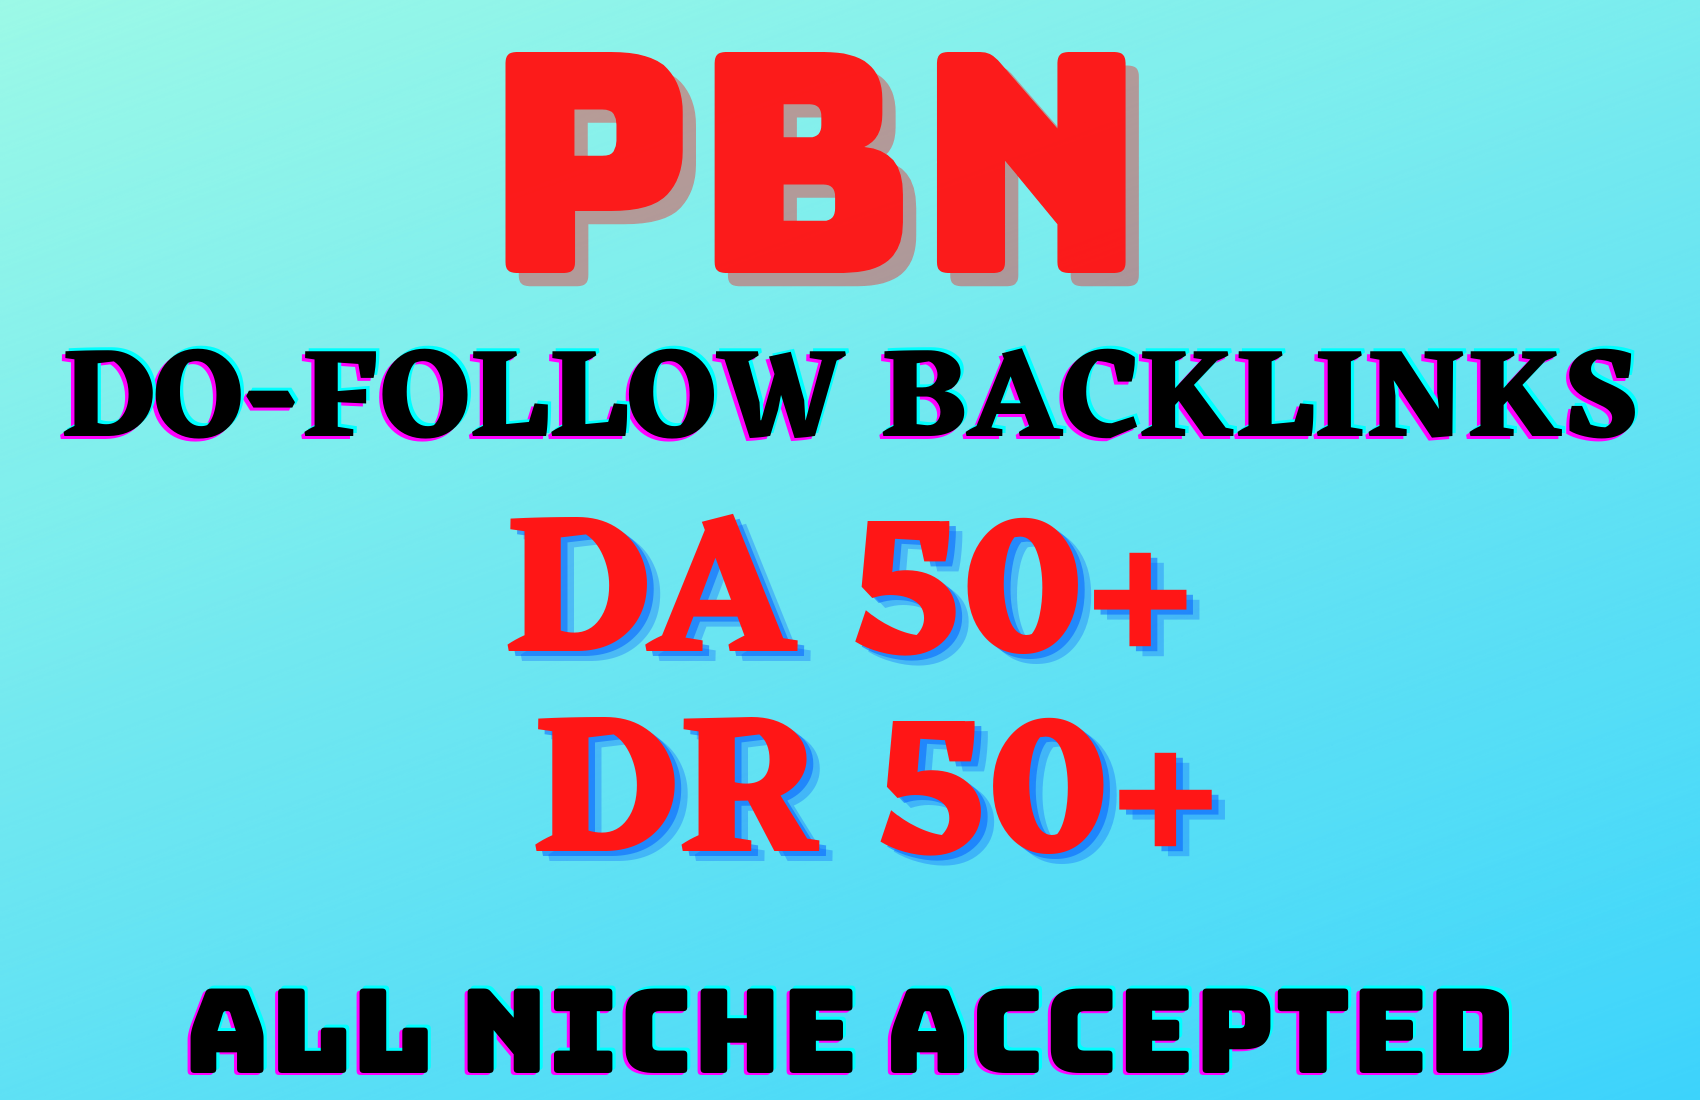 5 HQ homepage PBN backlinks from DA & DR 50+ websites